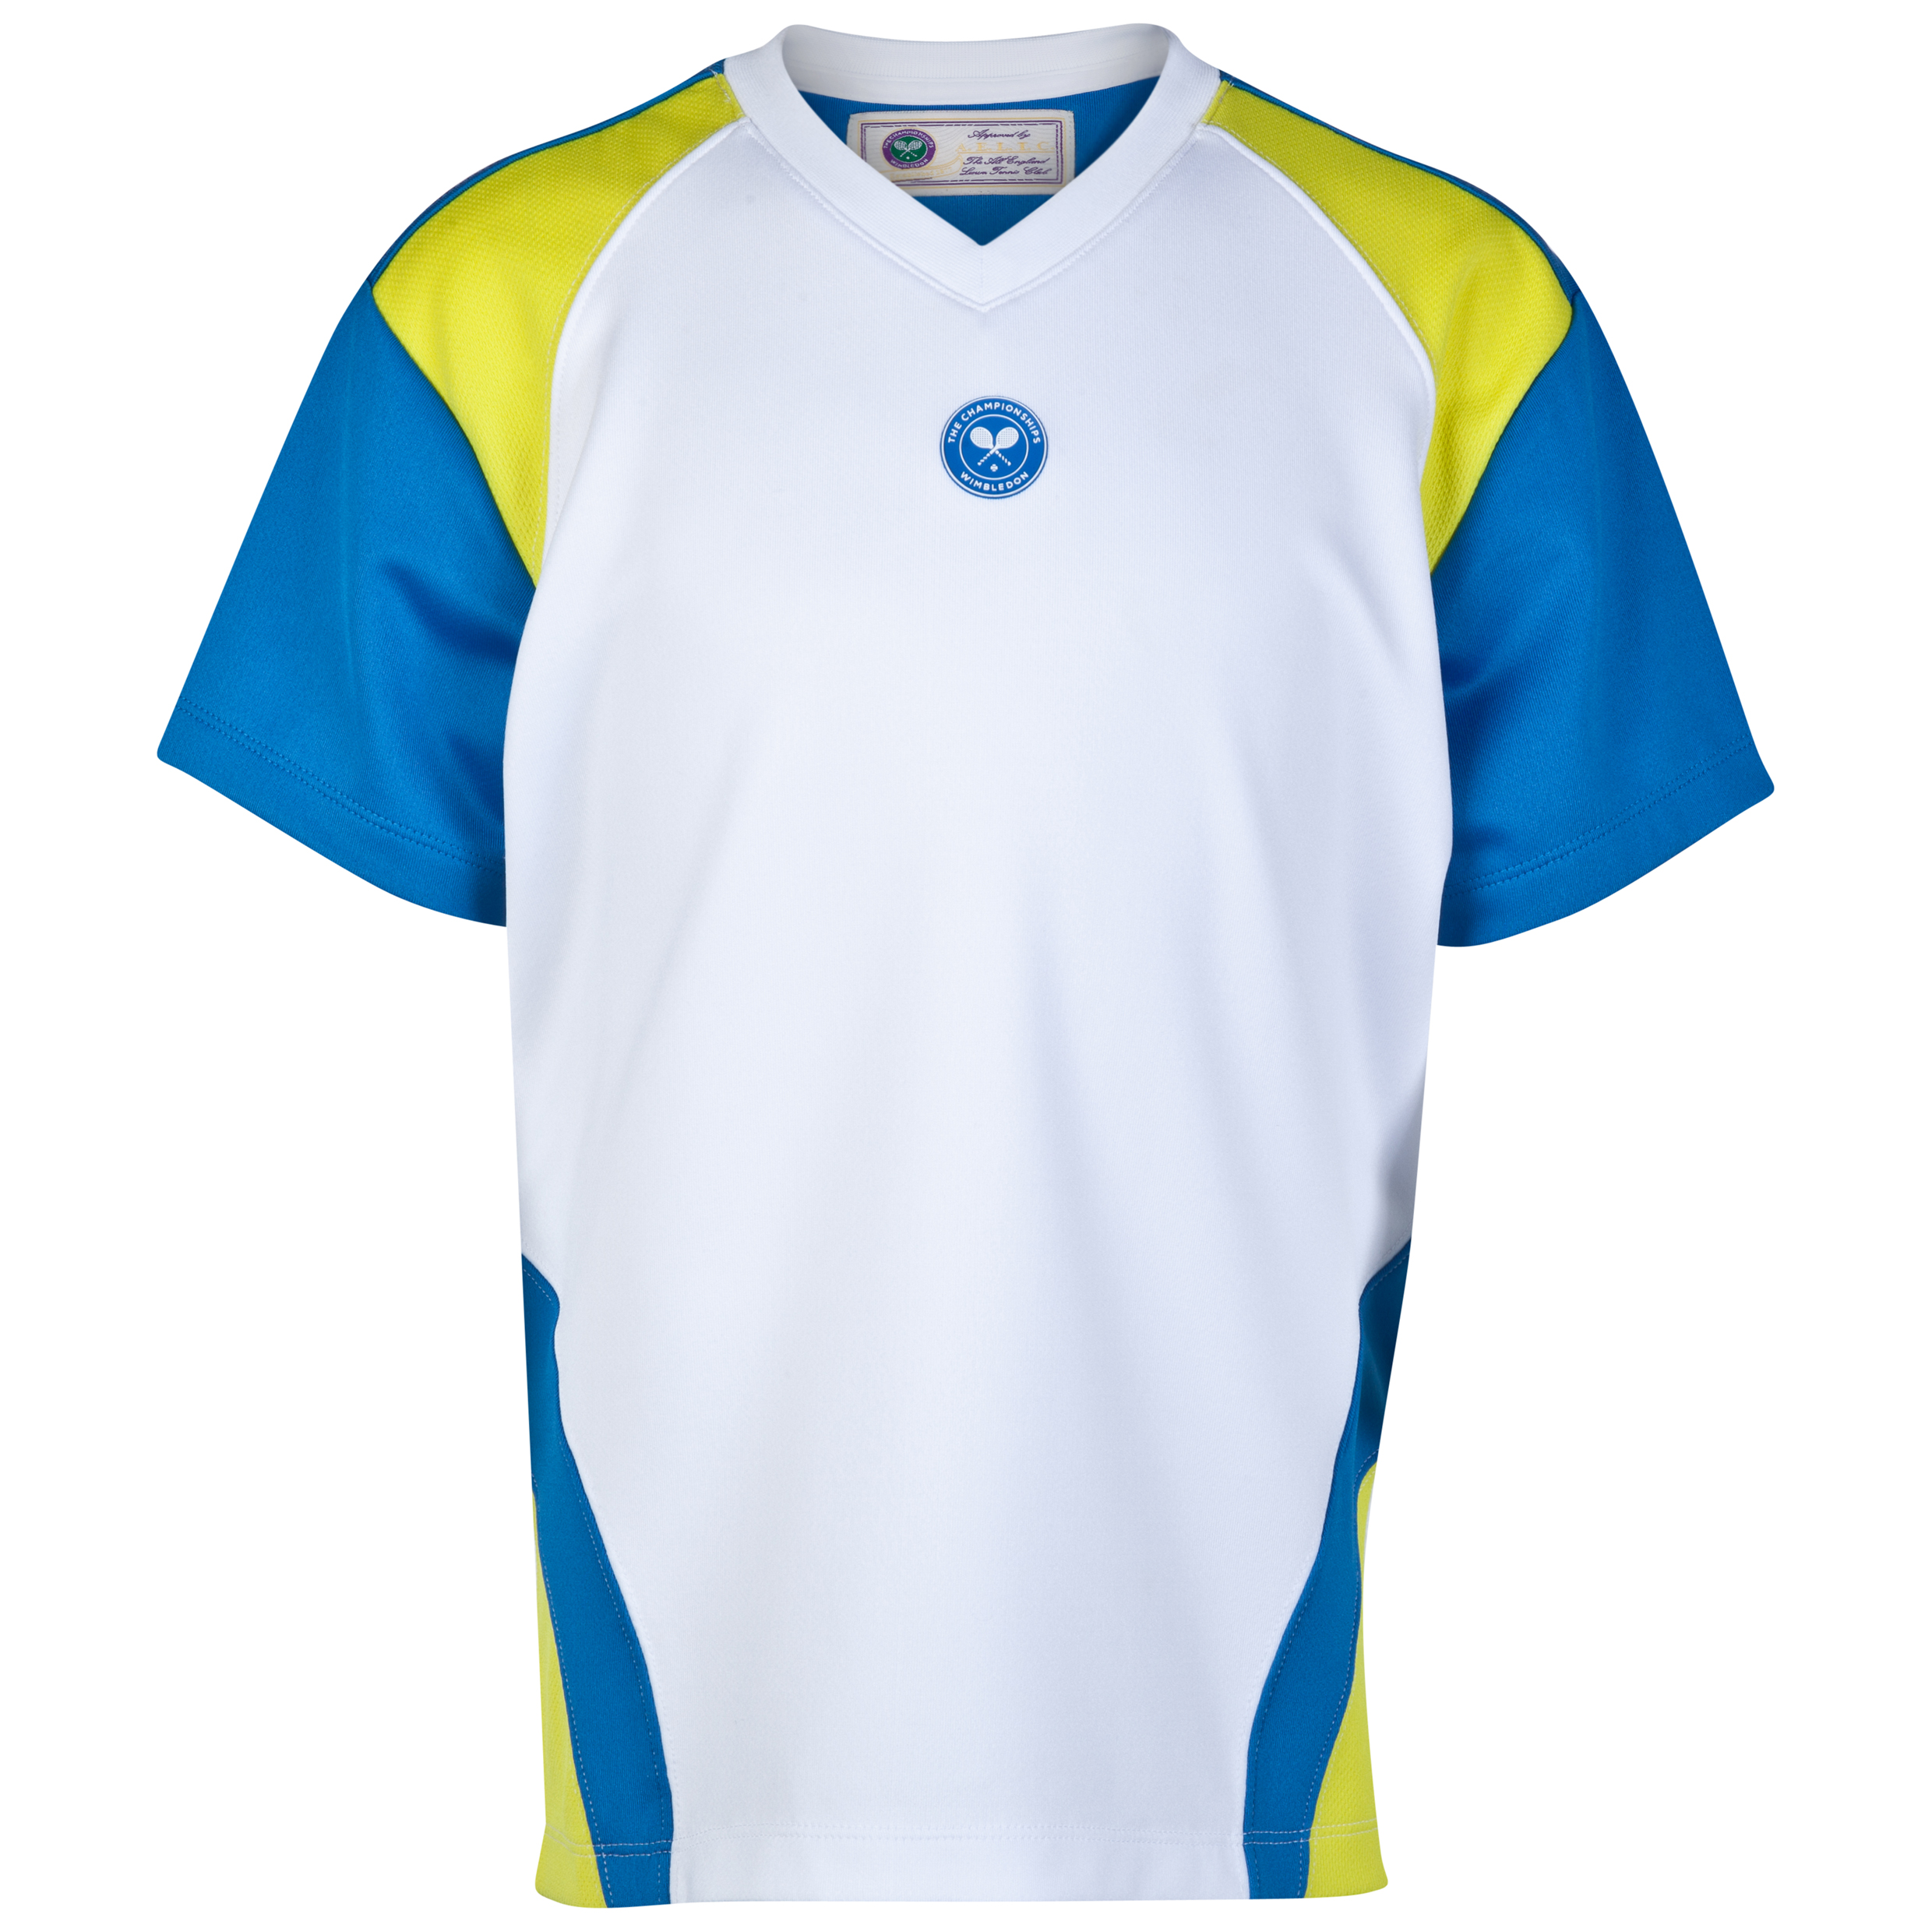 Wimbledon Player T-Shirt - Boys White